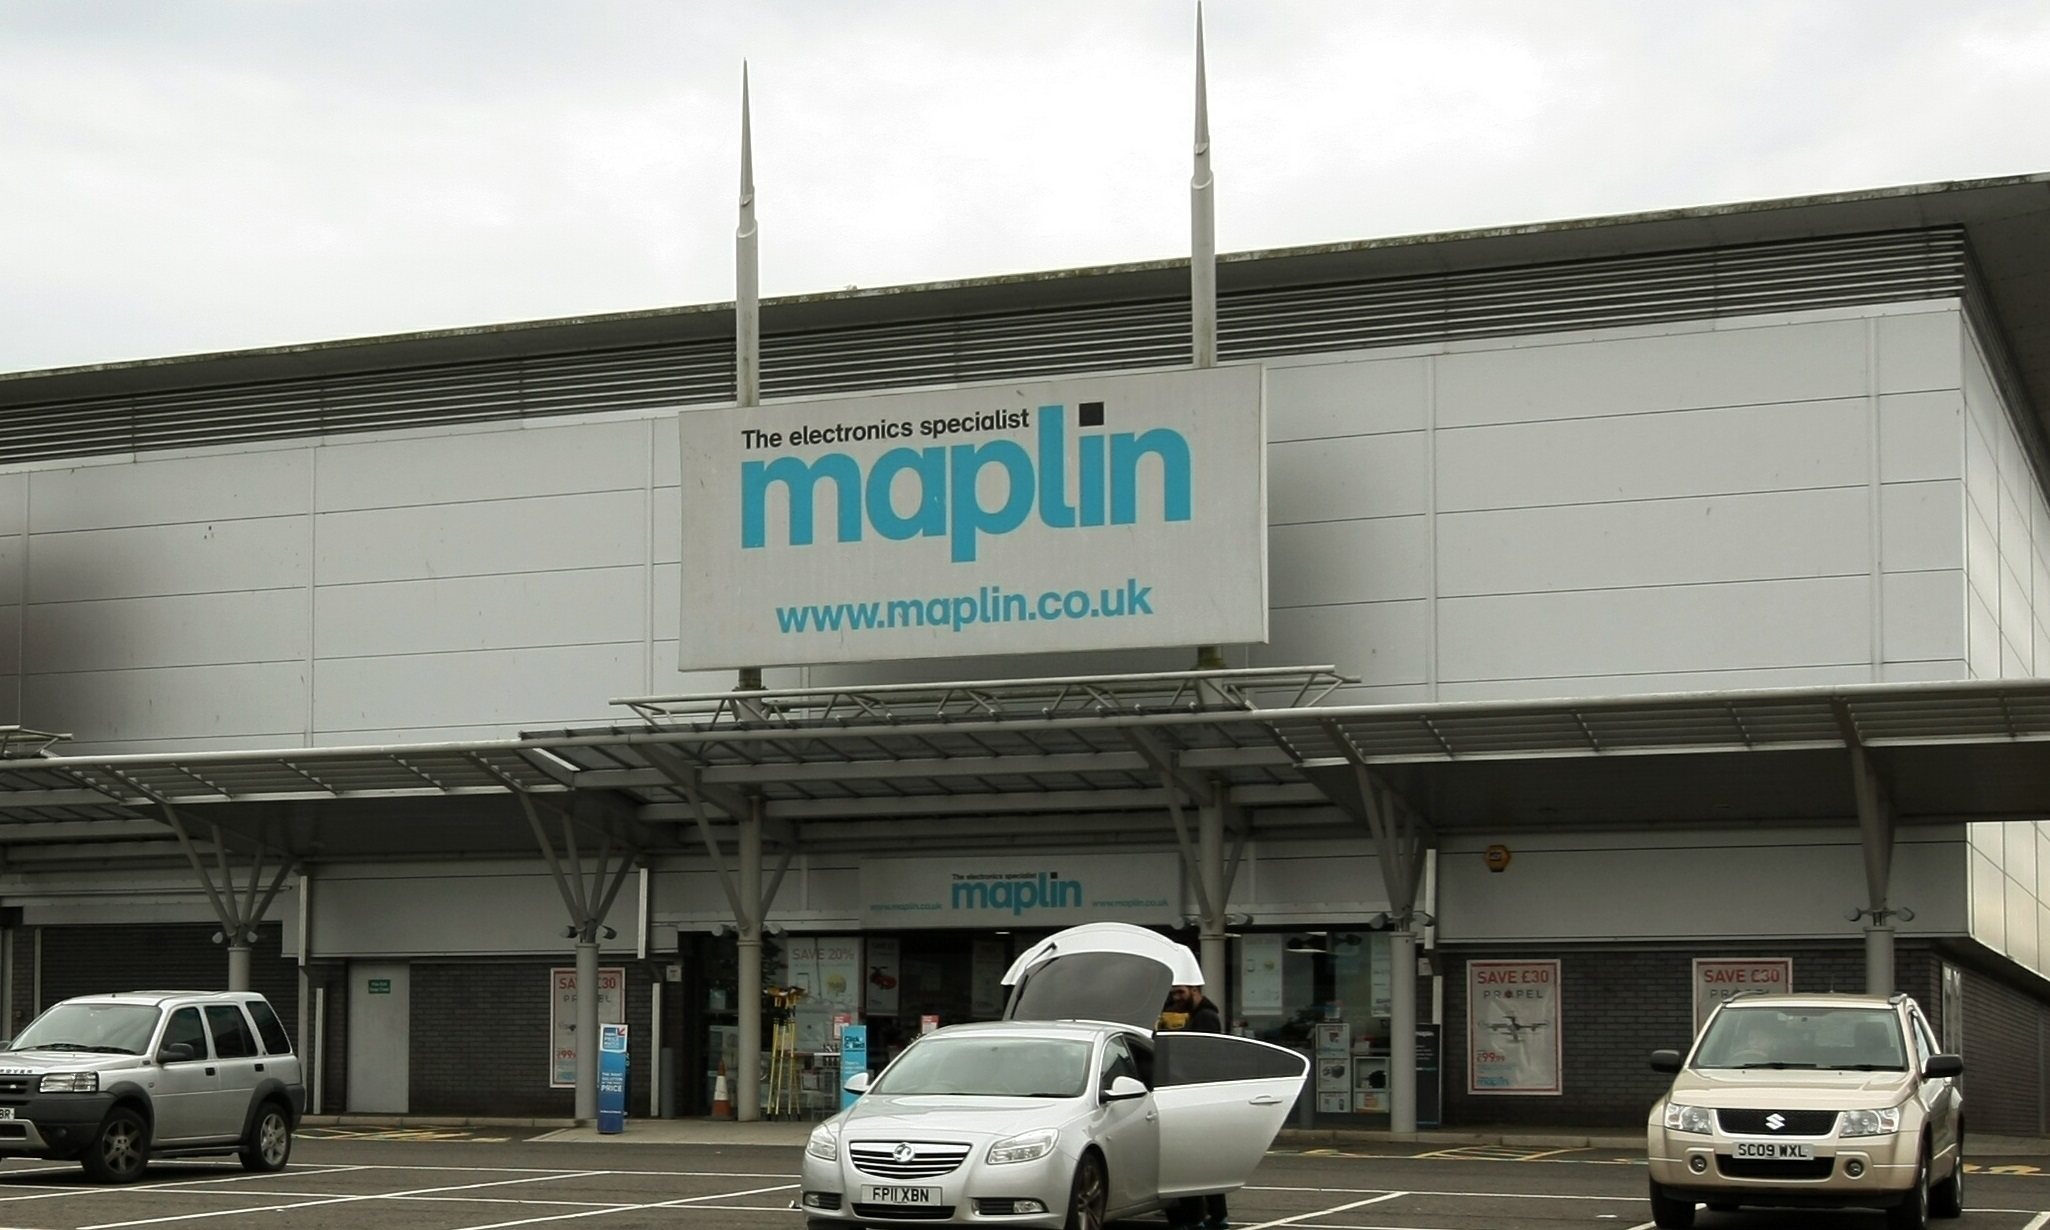 The Maplin store at Kingsway West Retail Park